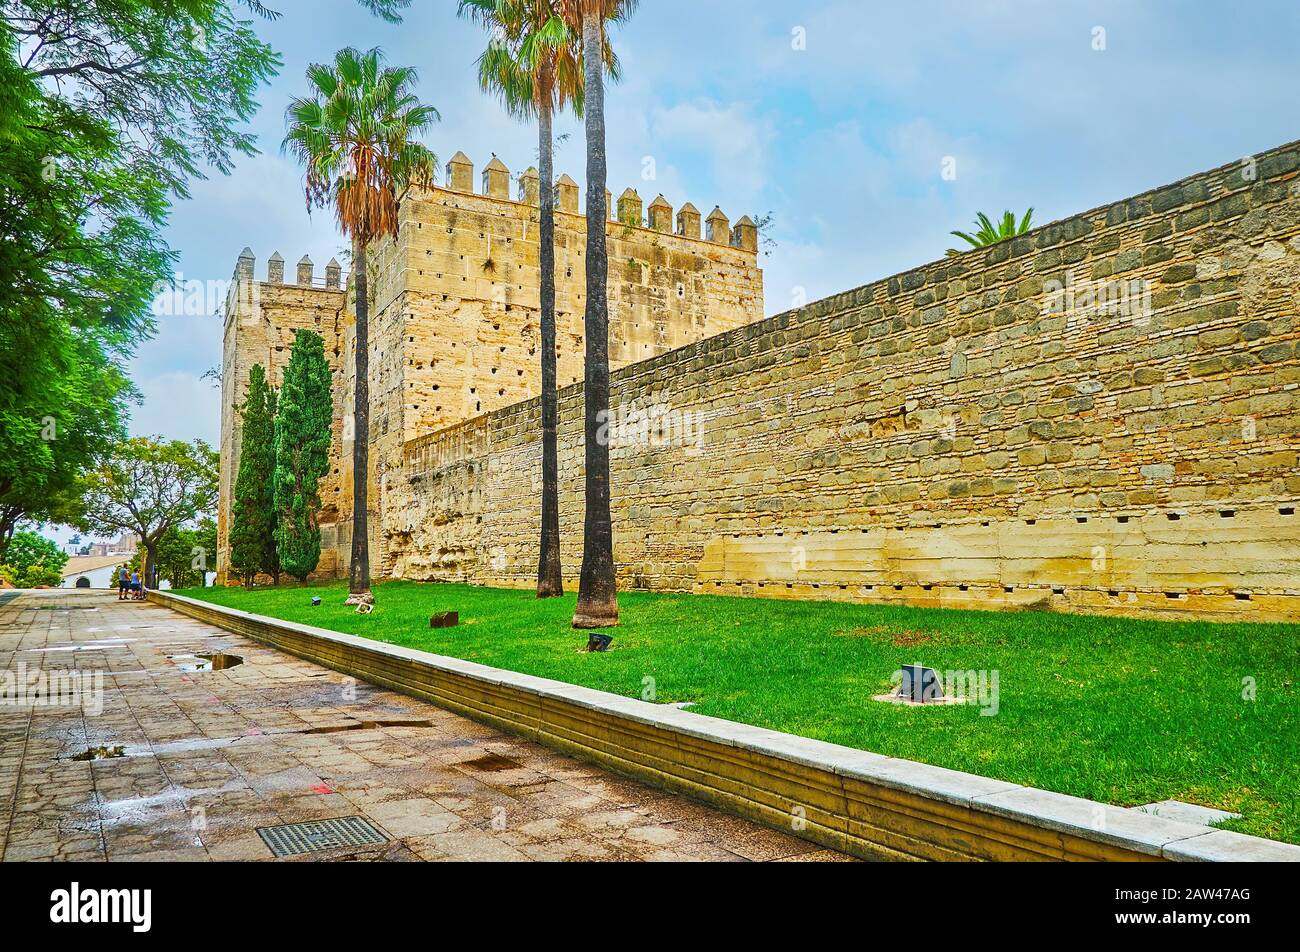 Exterior of Alcazar fortress, that is one of the main city landmarks and historical symbols of Jerez, Spain Stock Photo